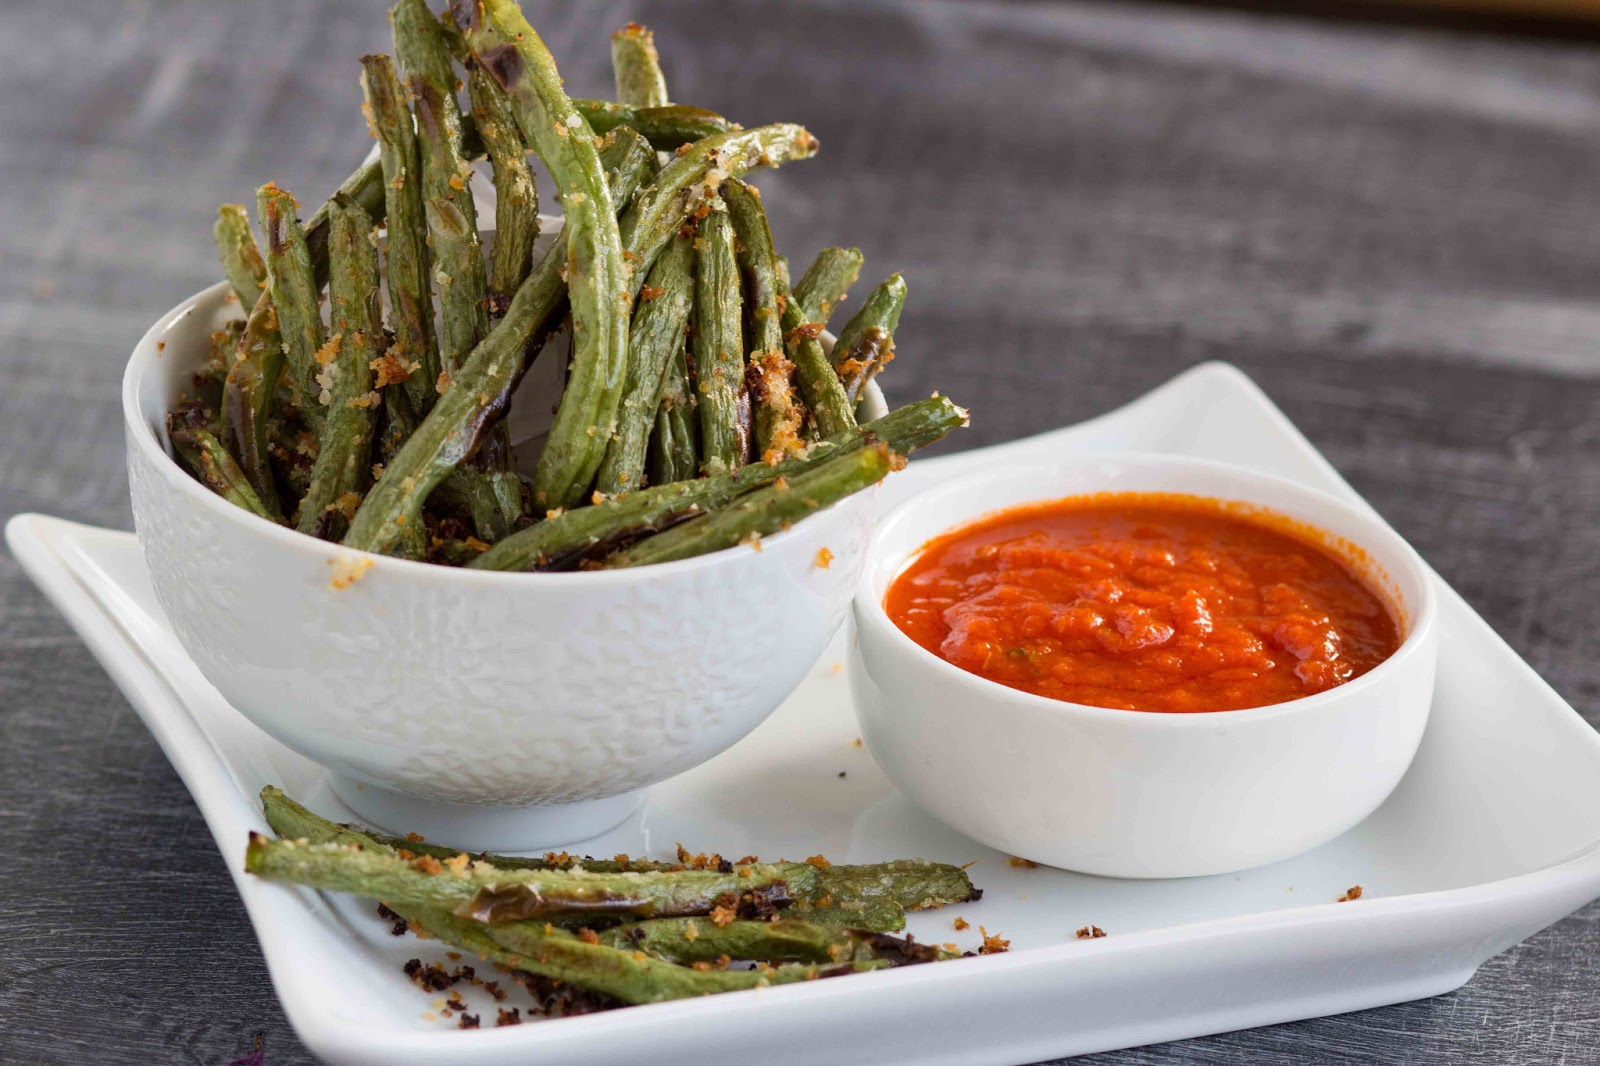 Kid Cultivation: Baked Parmesan Green Bean Fries